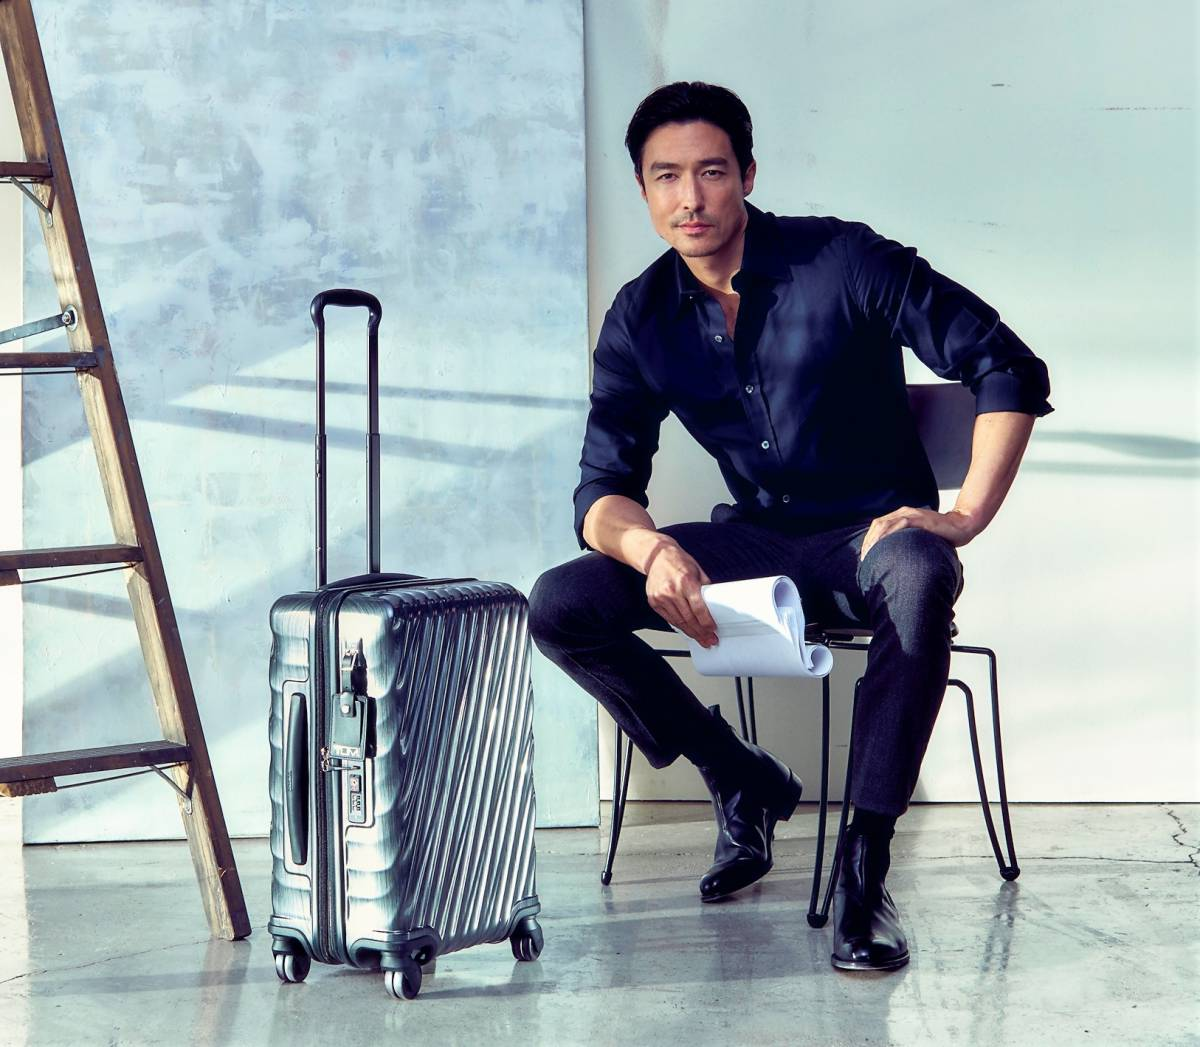 TUMI TAPS ACTOR DANIEL HENNEY FOR GLOBAL FILM SERIES